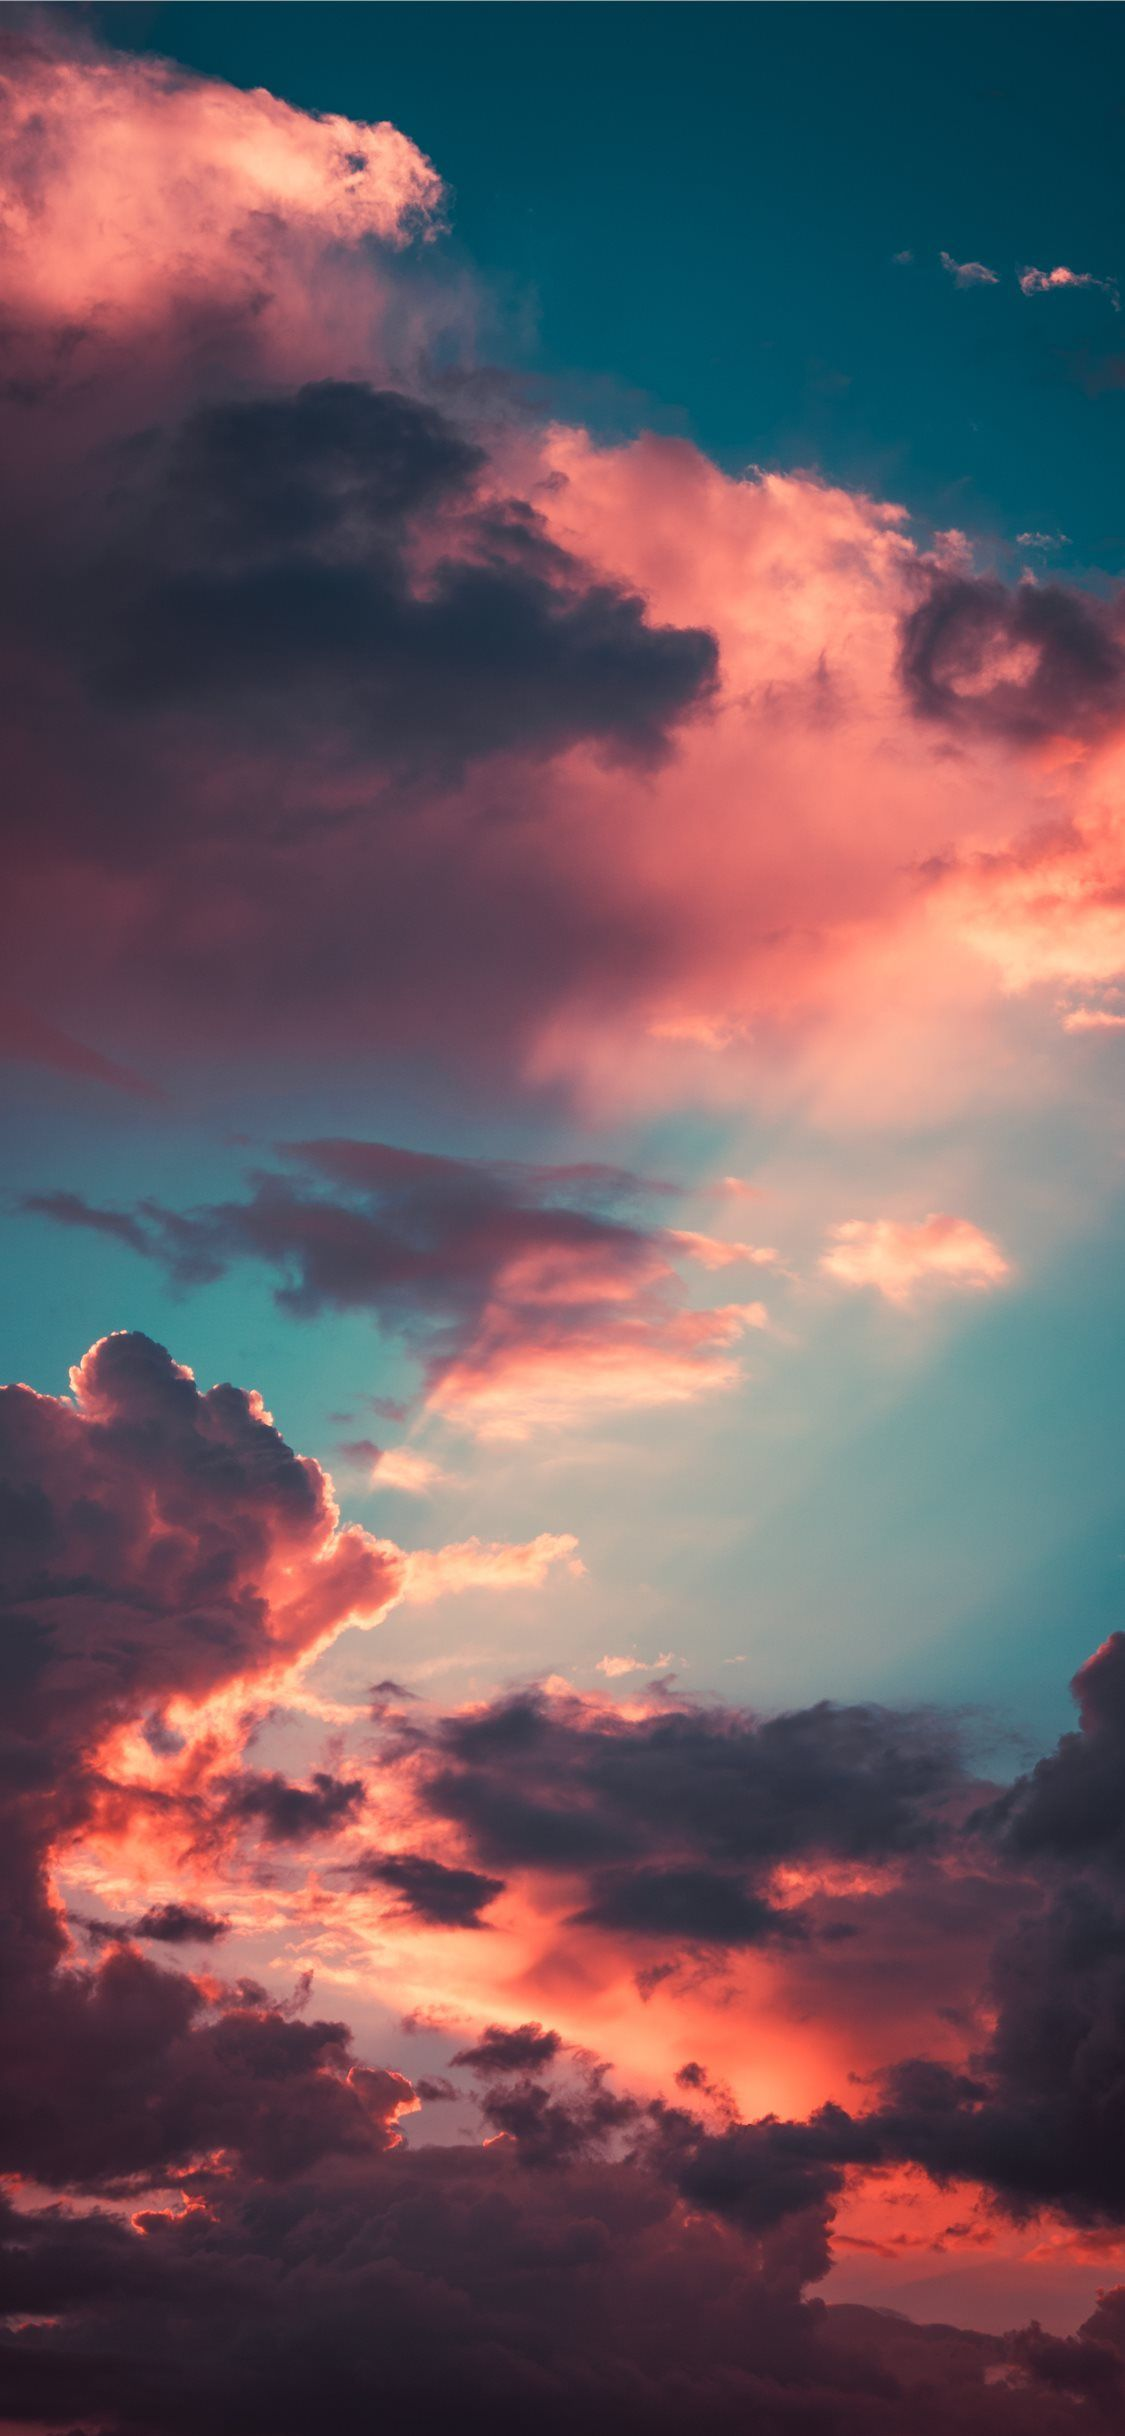 Aesthetic Iphone Wallpapers 4k Hd Aesthetic Iphone Backgrounds On Wallpaperbat